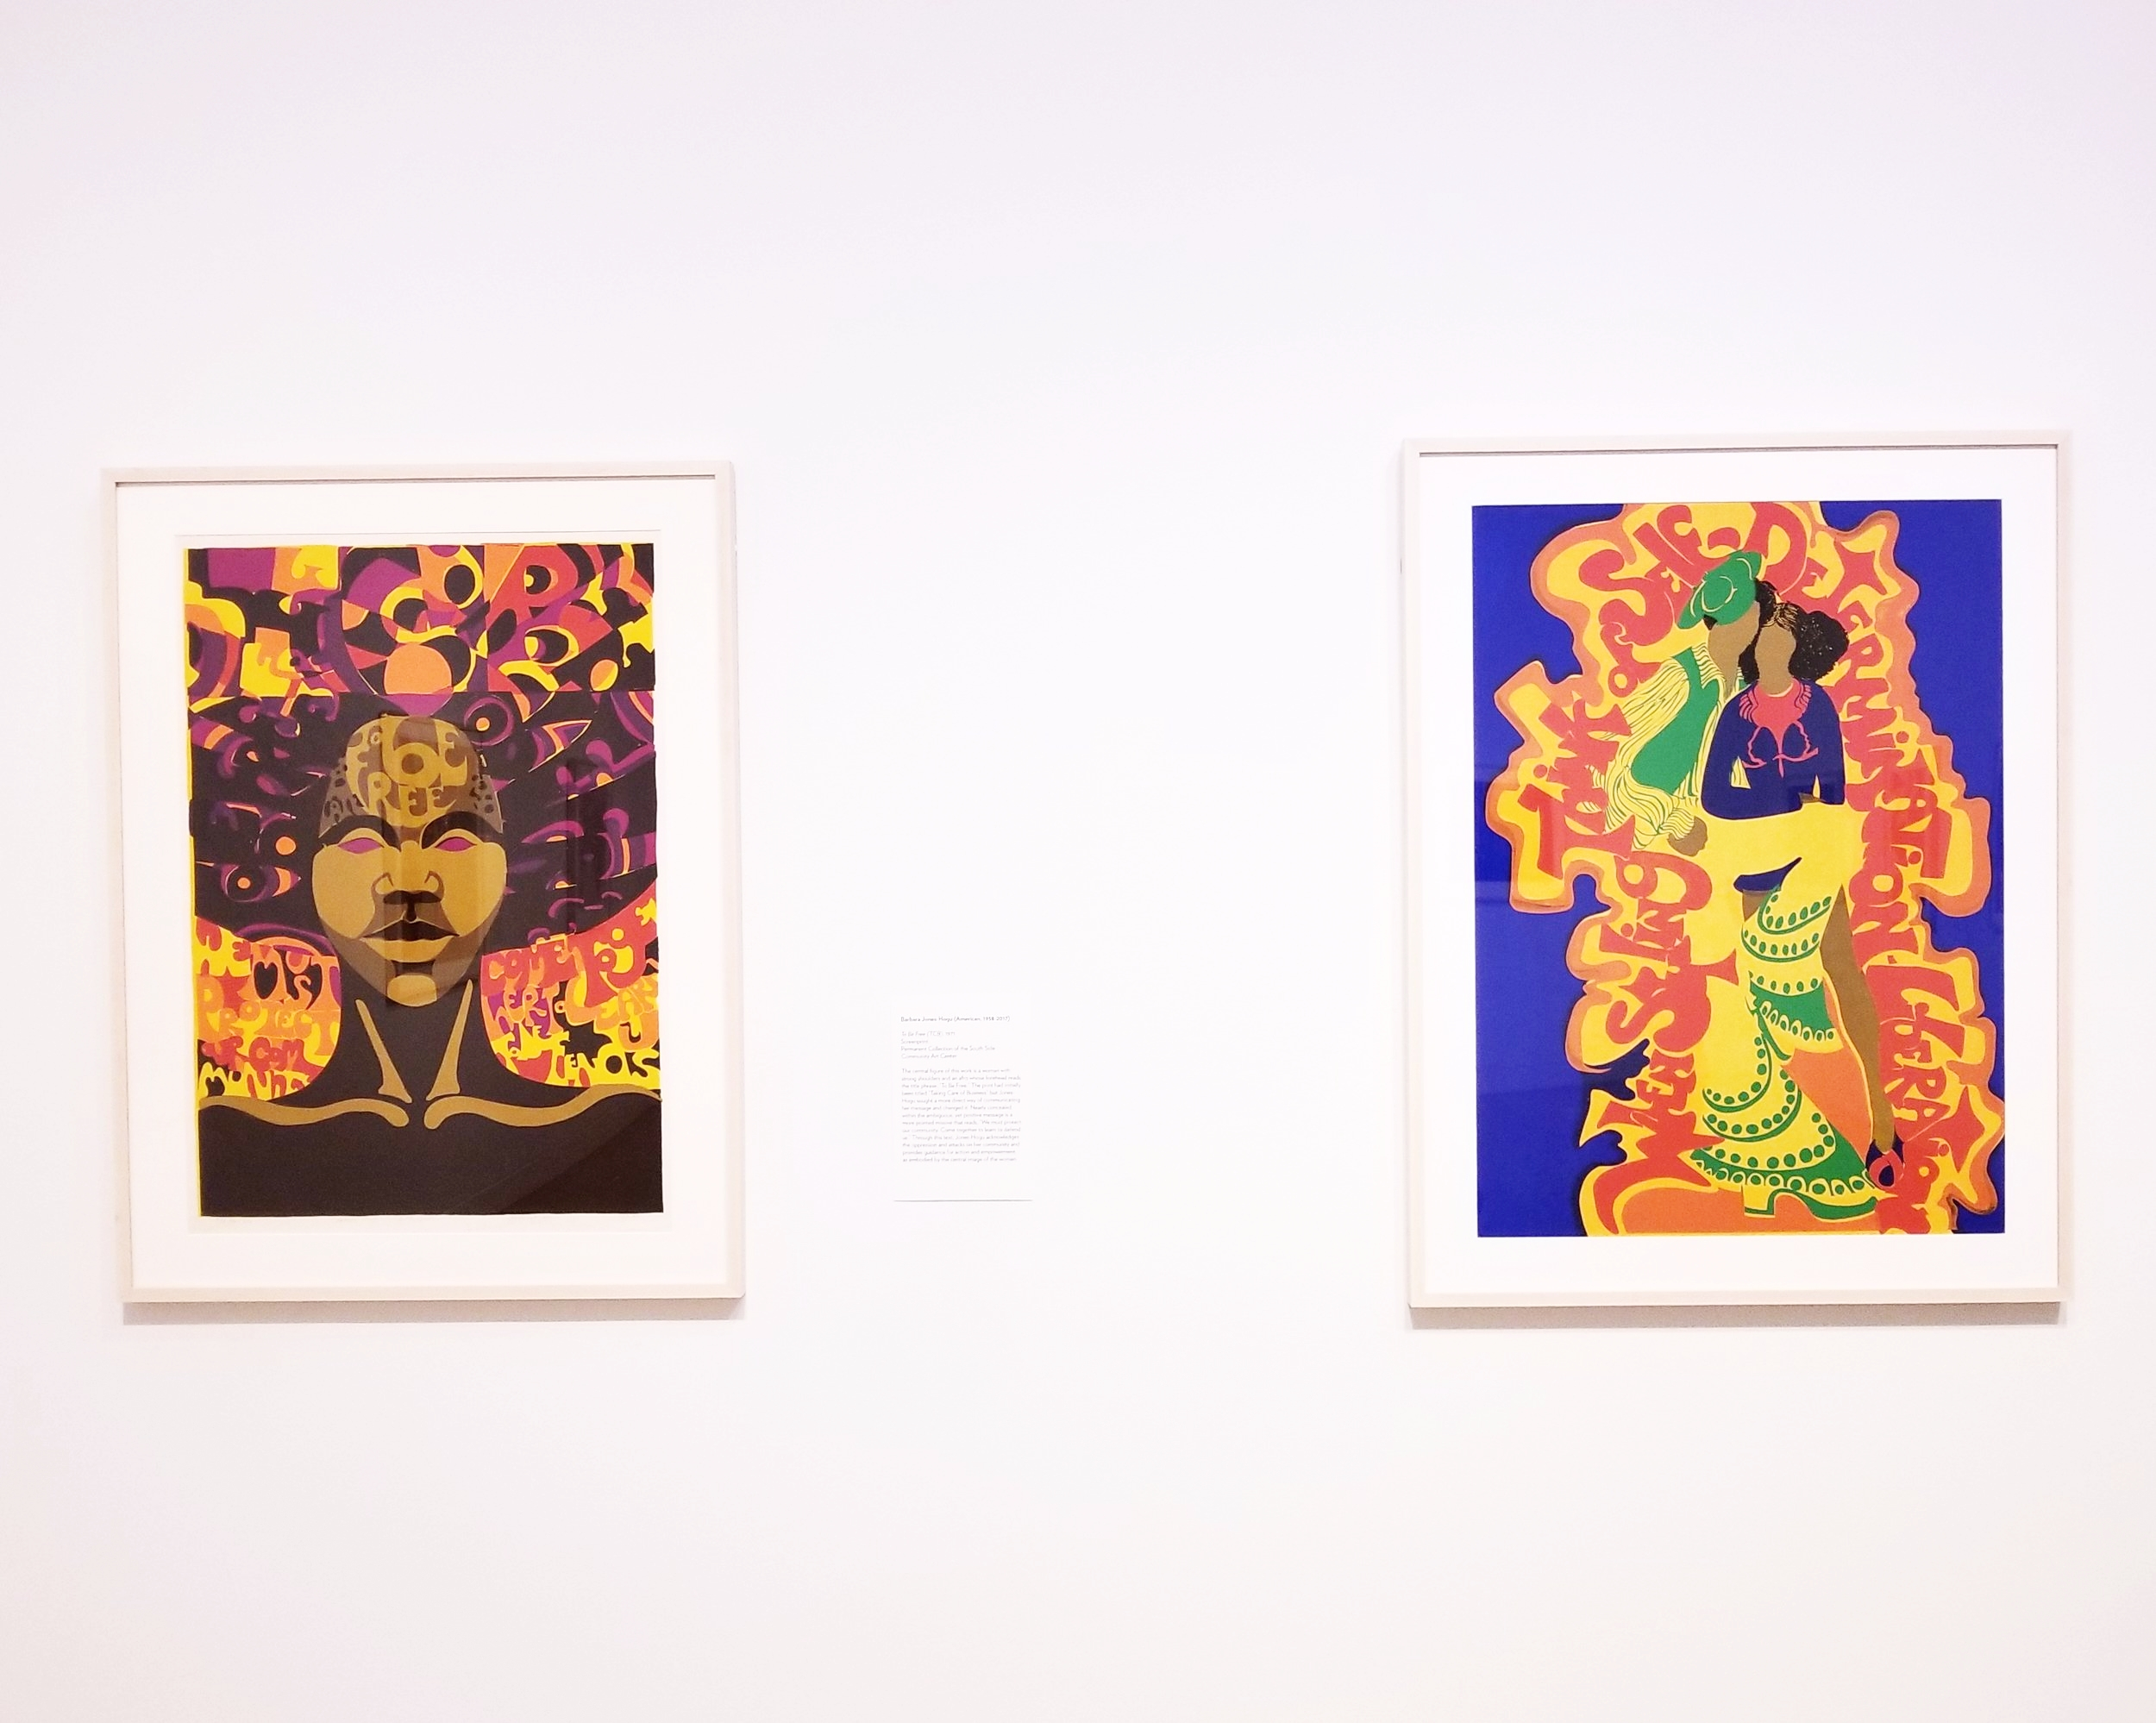 (left to right) TO BE FREE, 1971 & WHEN STYLING, 1973 Barbara Jones-Hogu